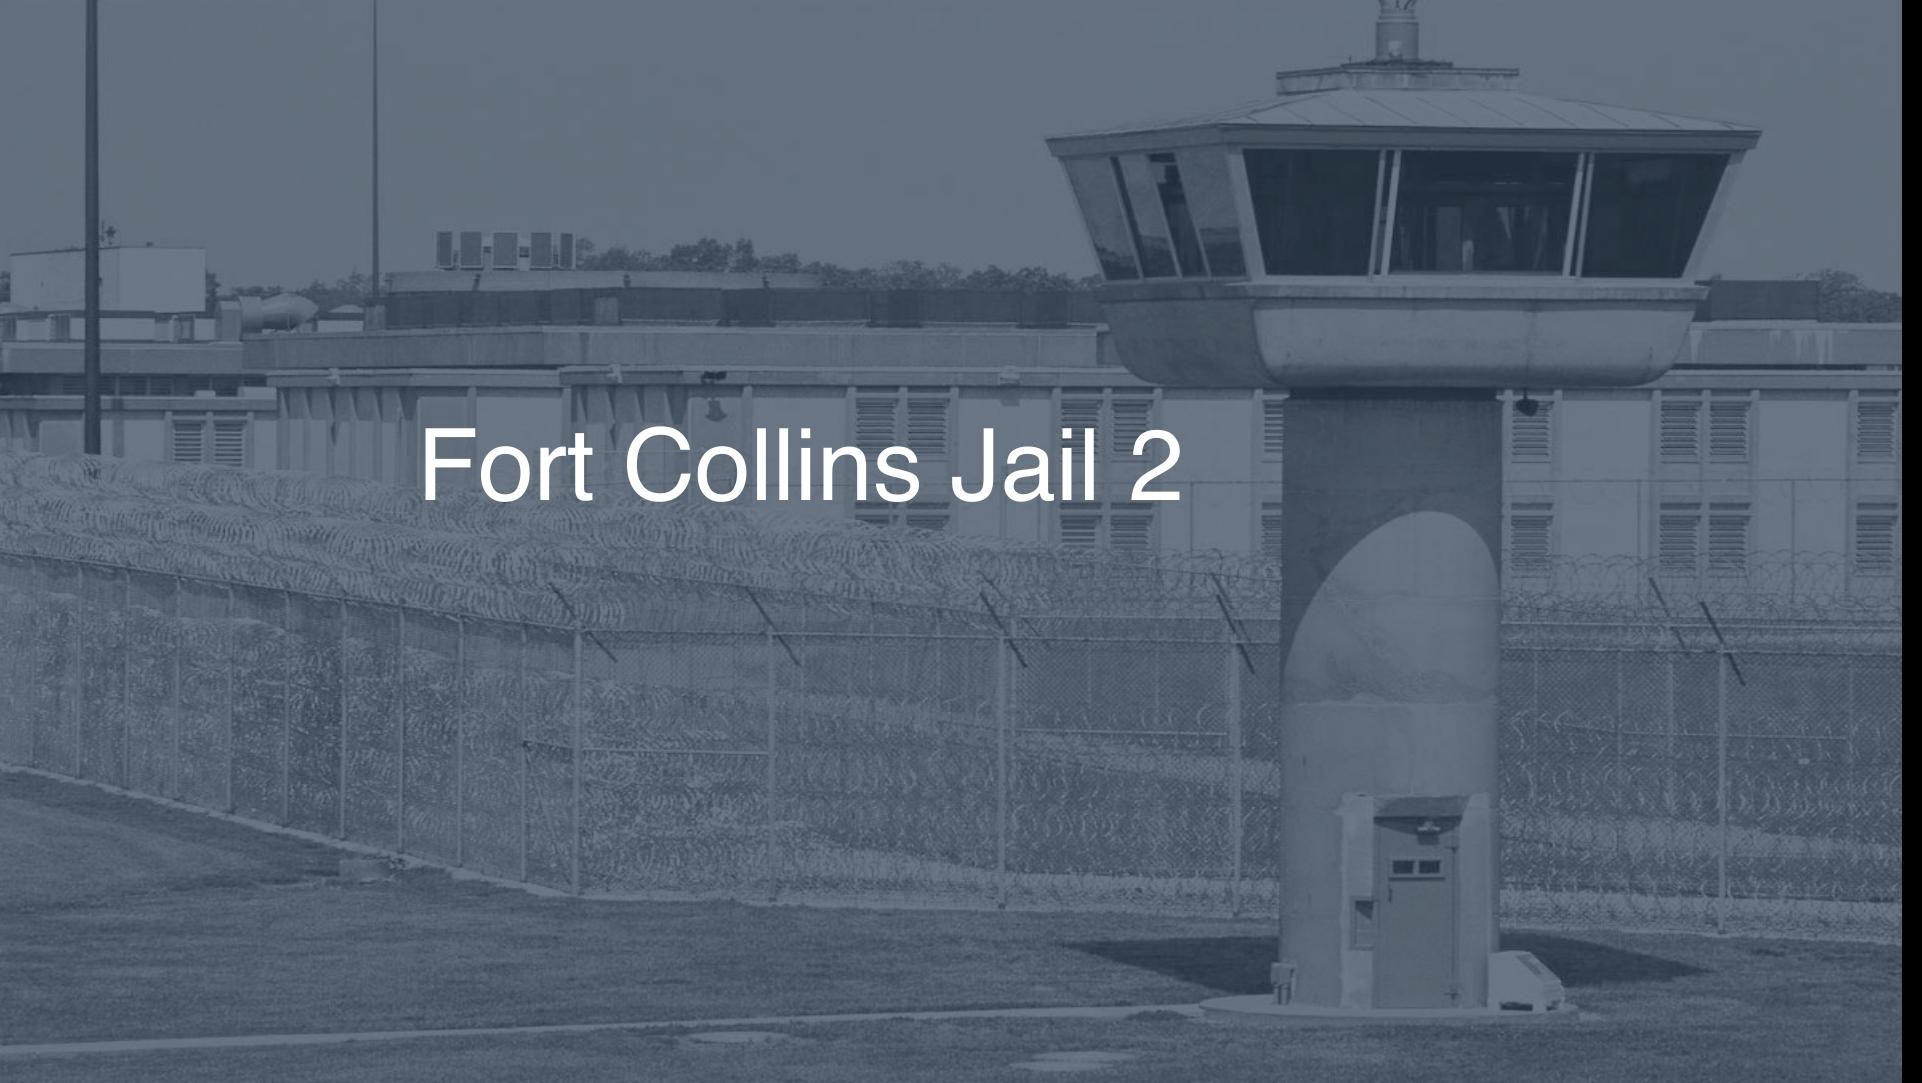 Fort Collins Jail Inmate Search, Lookup & Services - Pigeonly